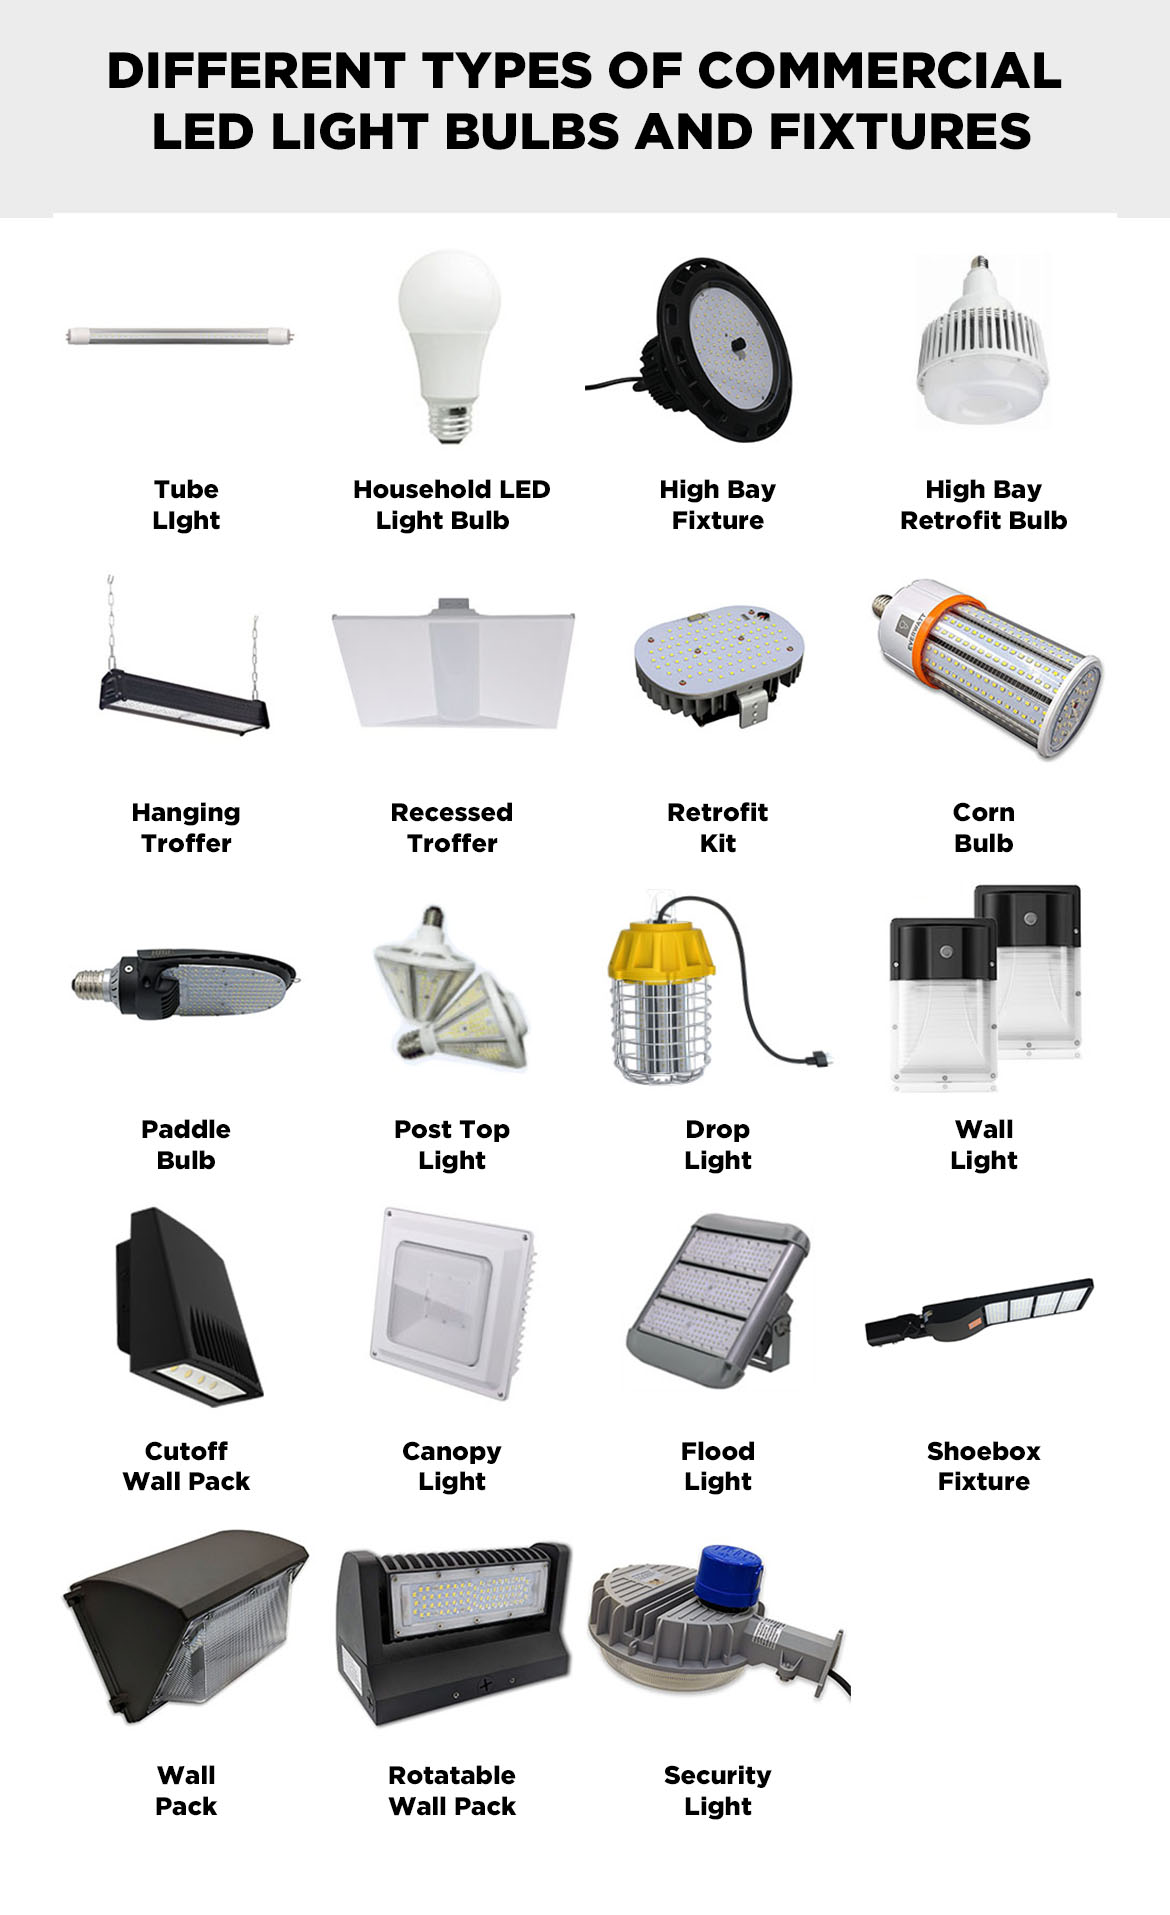 ??led All The Different Indoor And Outdoor Commercial Led Bulb Types